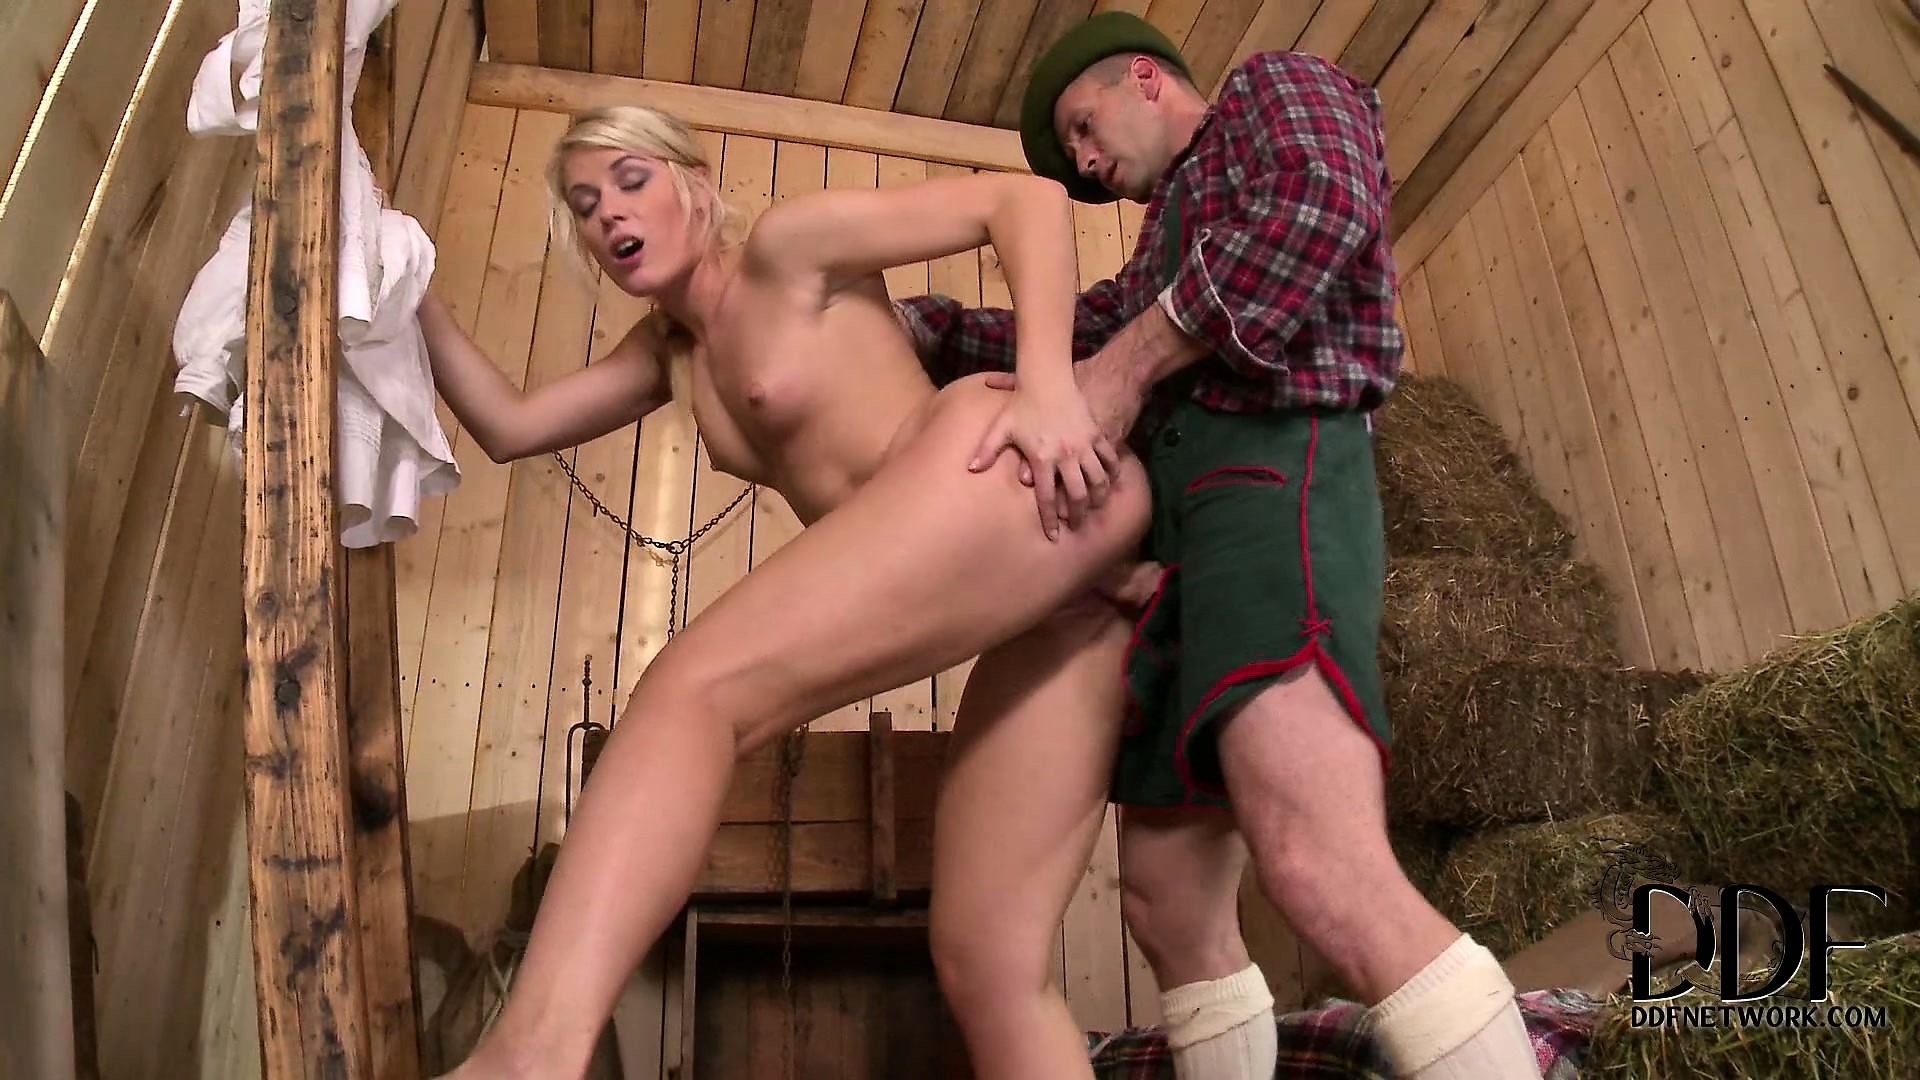 Porn Tube of The Blonde Farm Babe Rides That Cock With Desire And Loves To Get Fucked Doggy Style